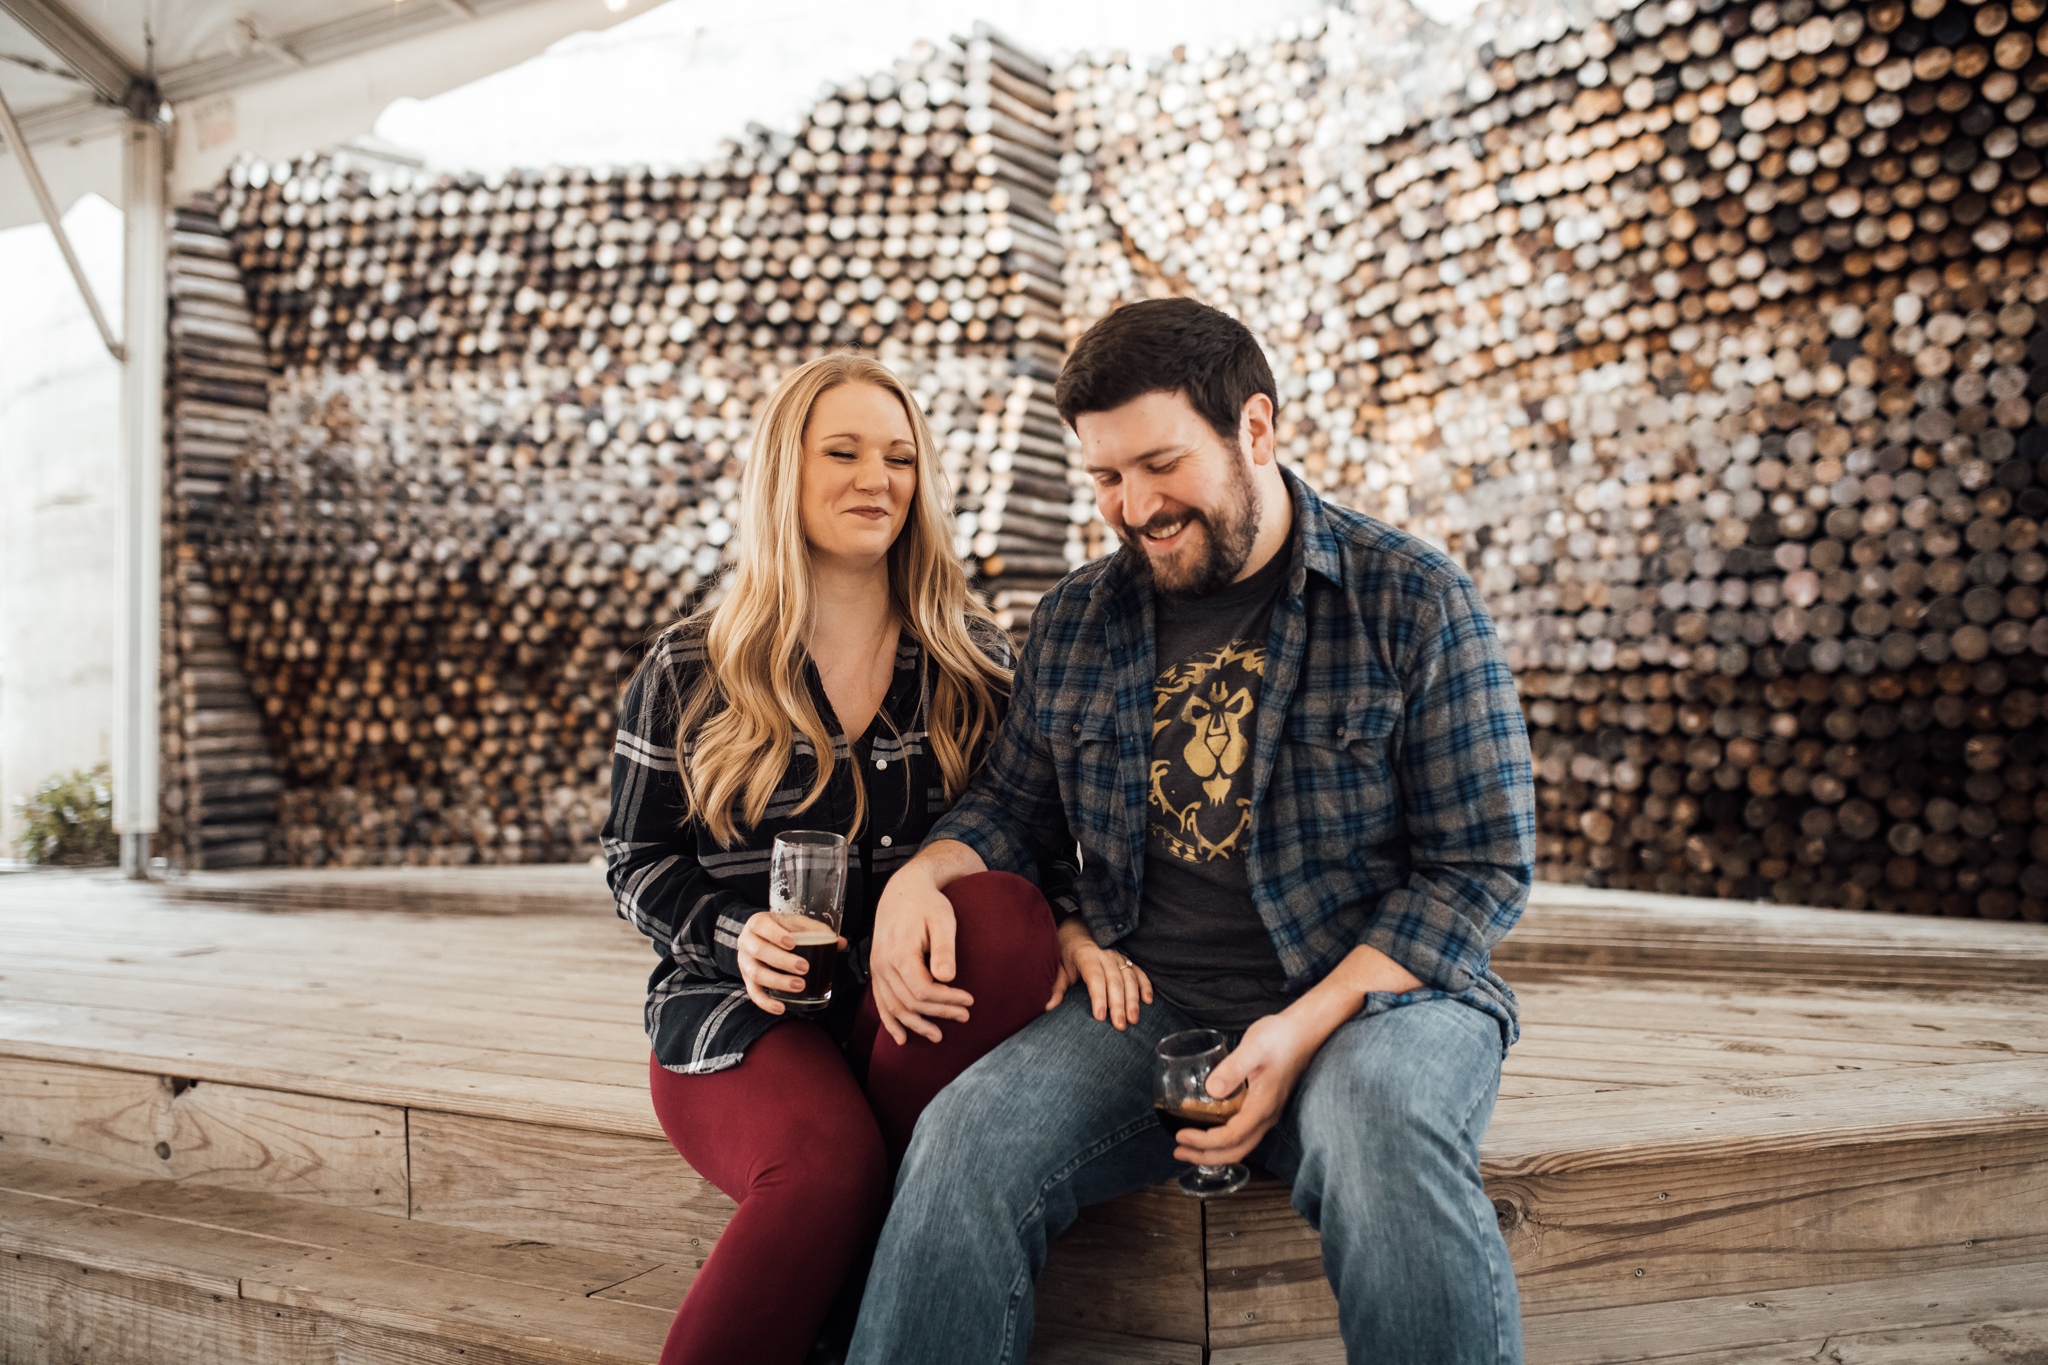 wiseacre-brewing-wedding-photographer-the-warmth-around-you-cassie-cook-photography (10 of 64).jpg